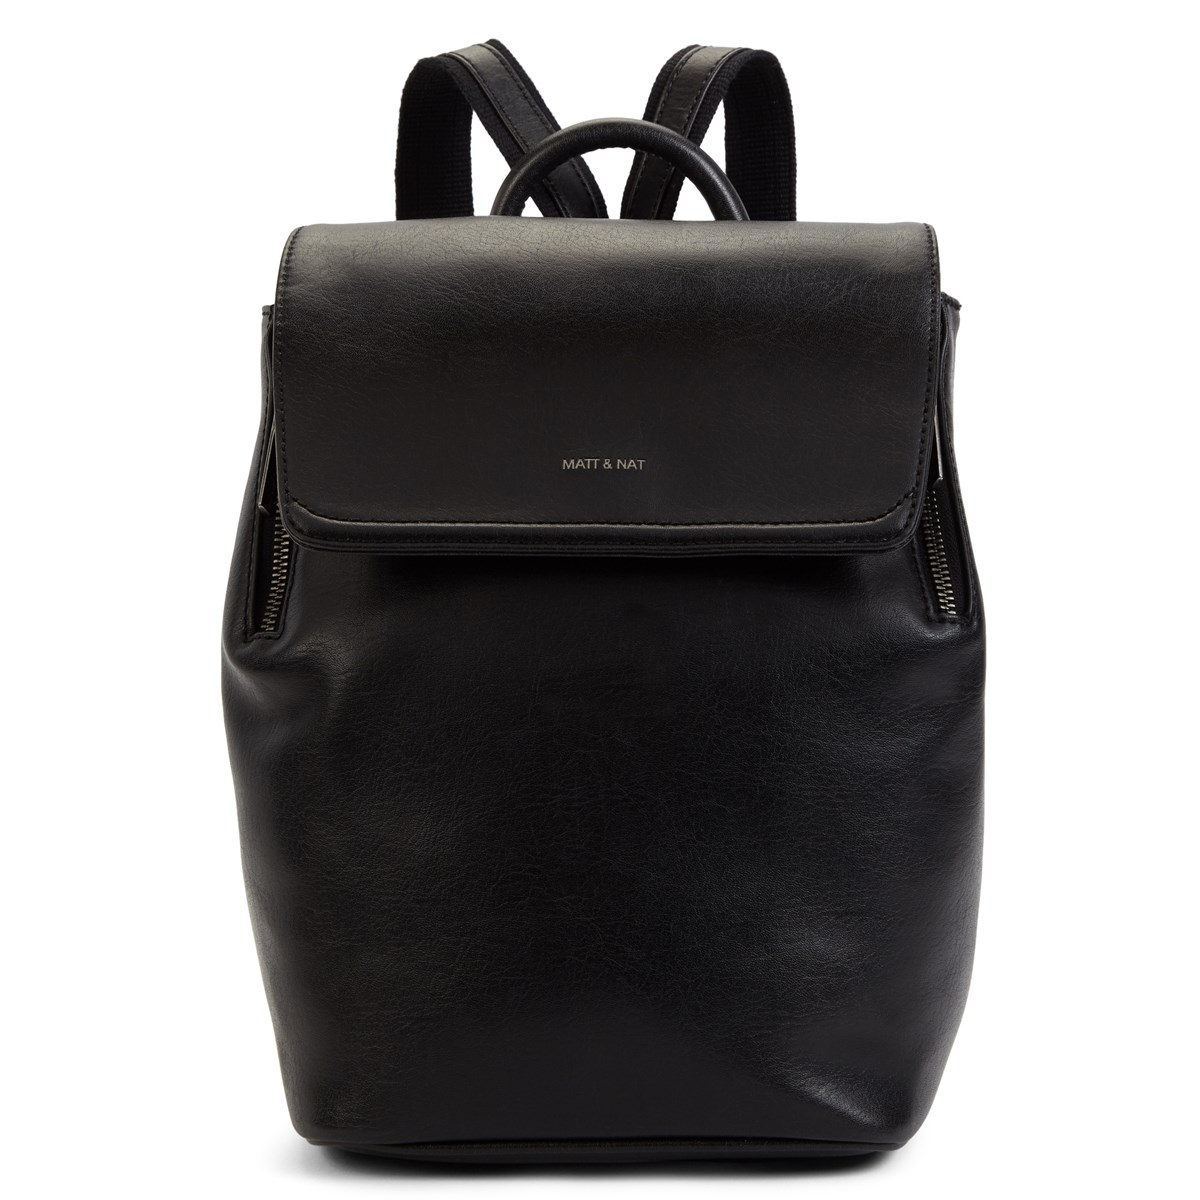 Fabi Mini Black Backpack